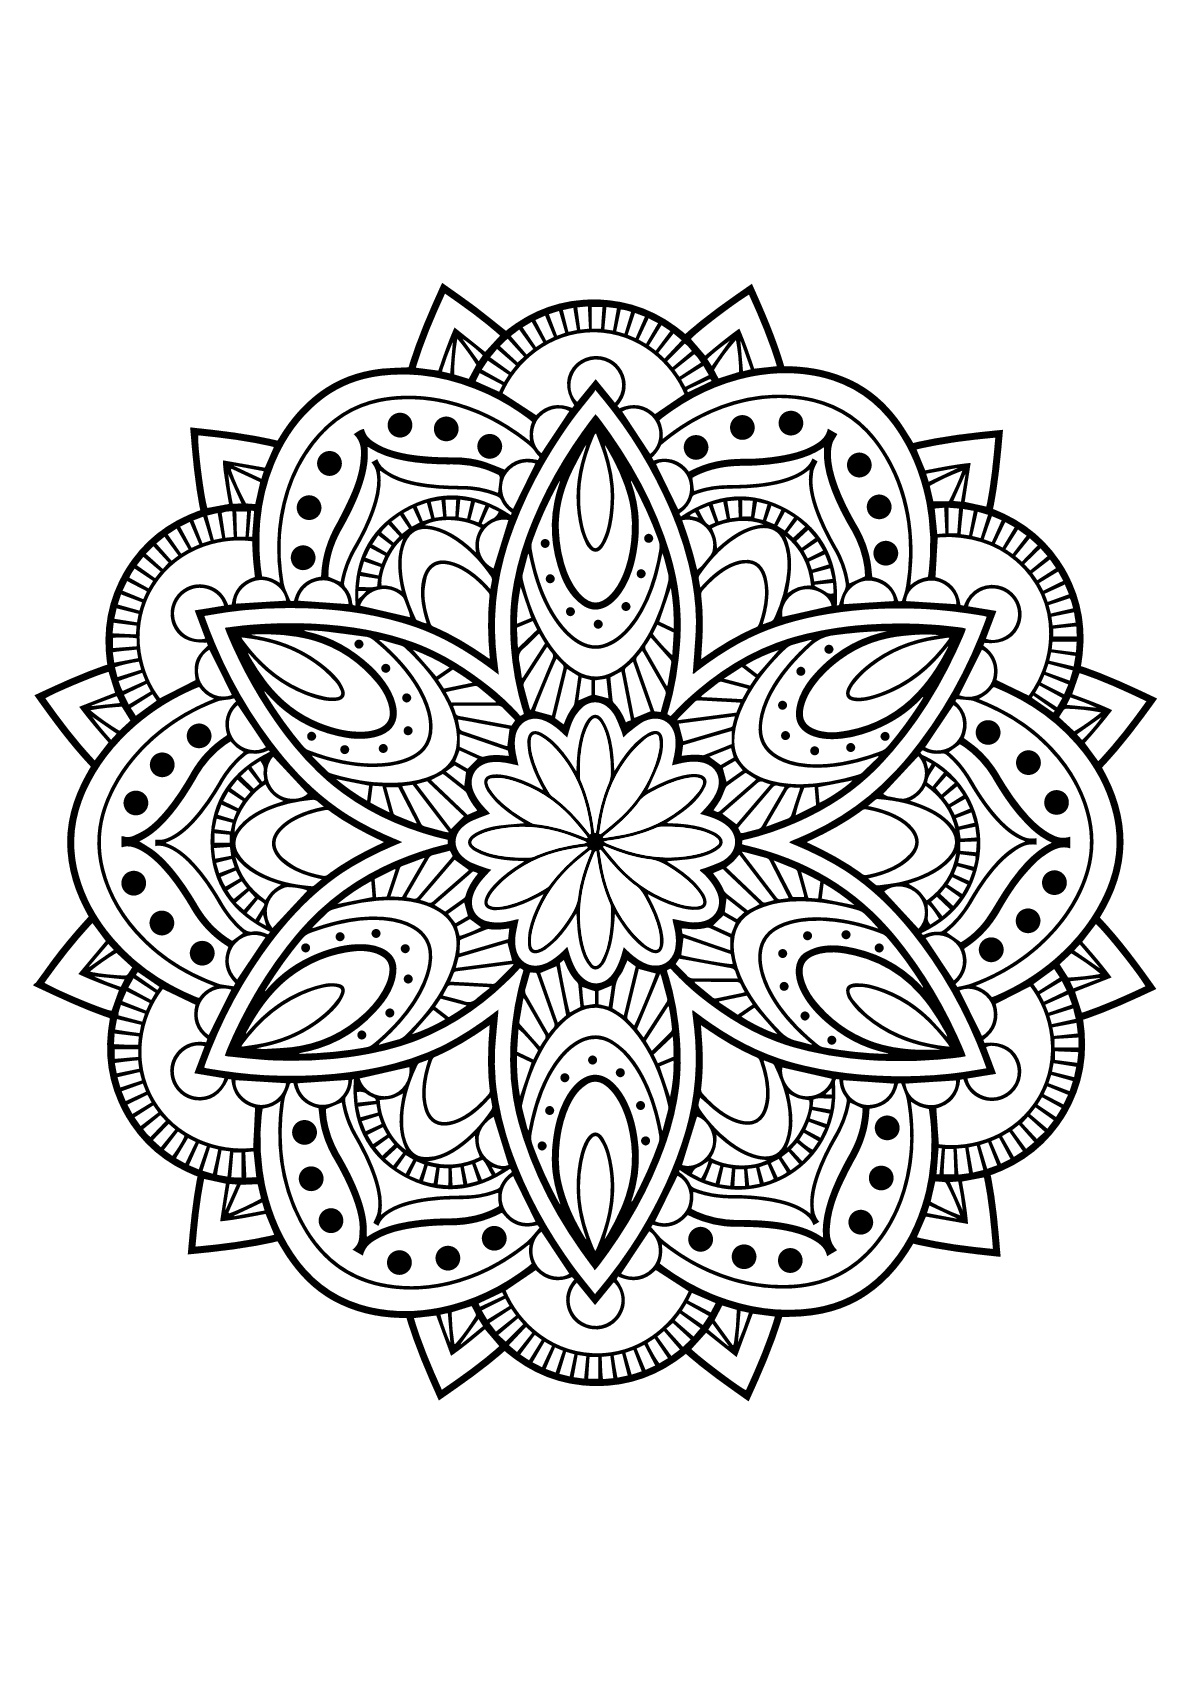 Mandala from free coloring books